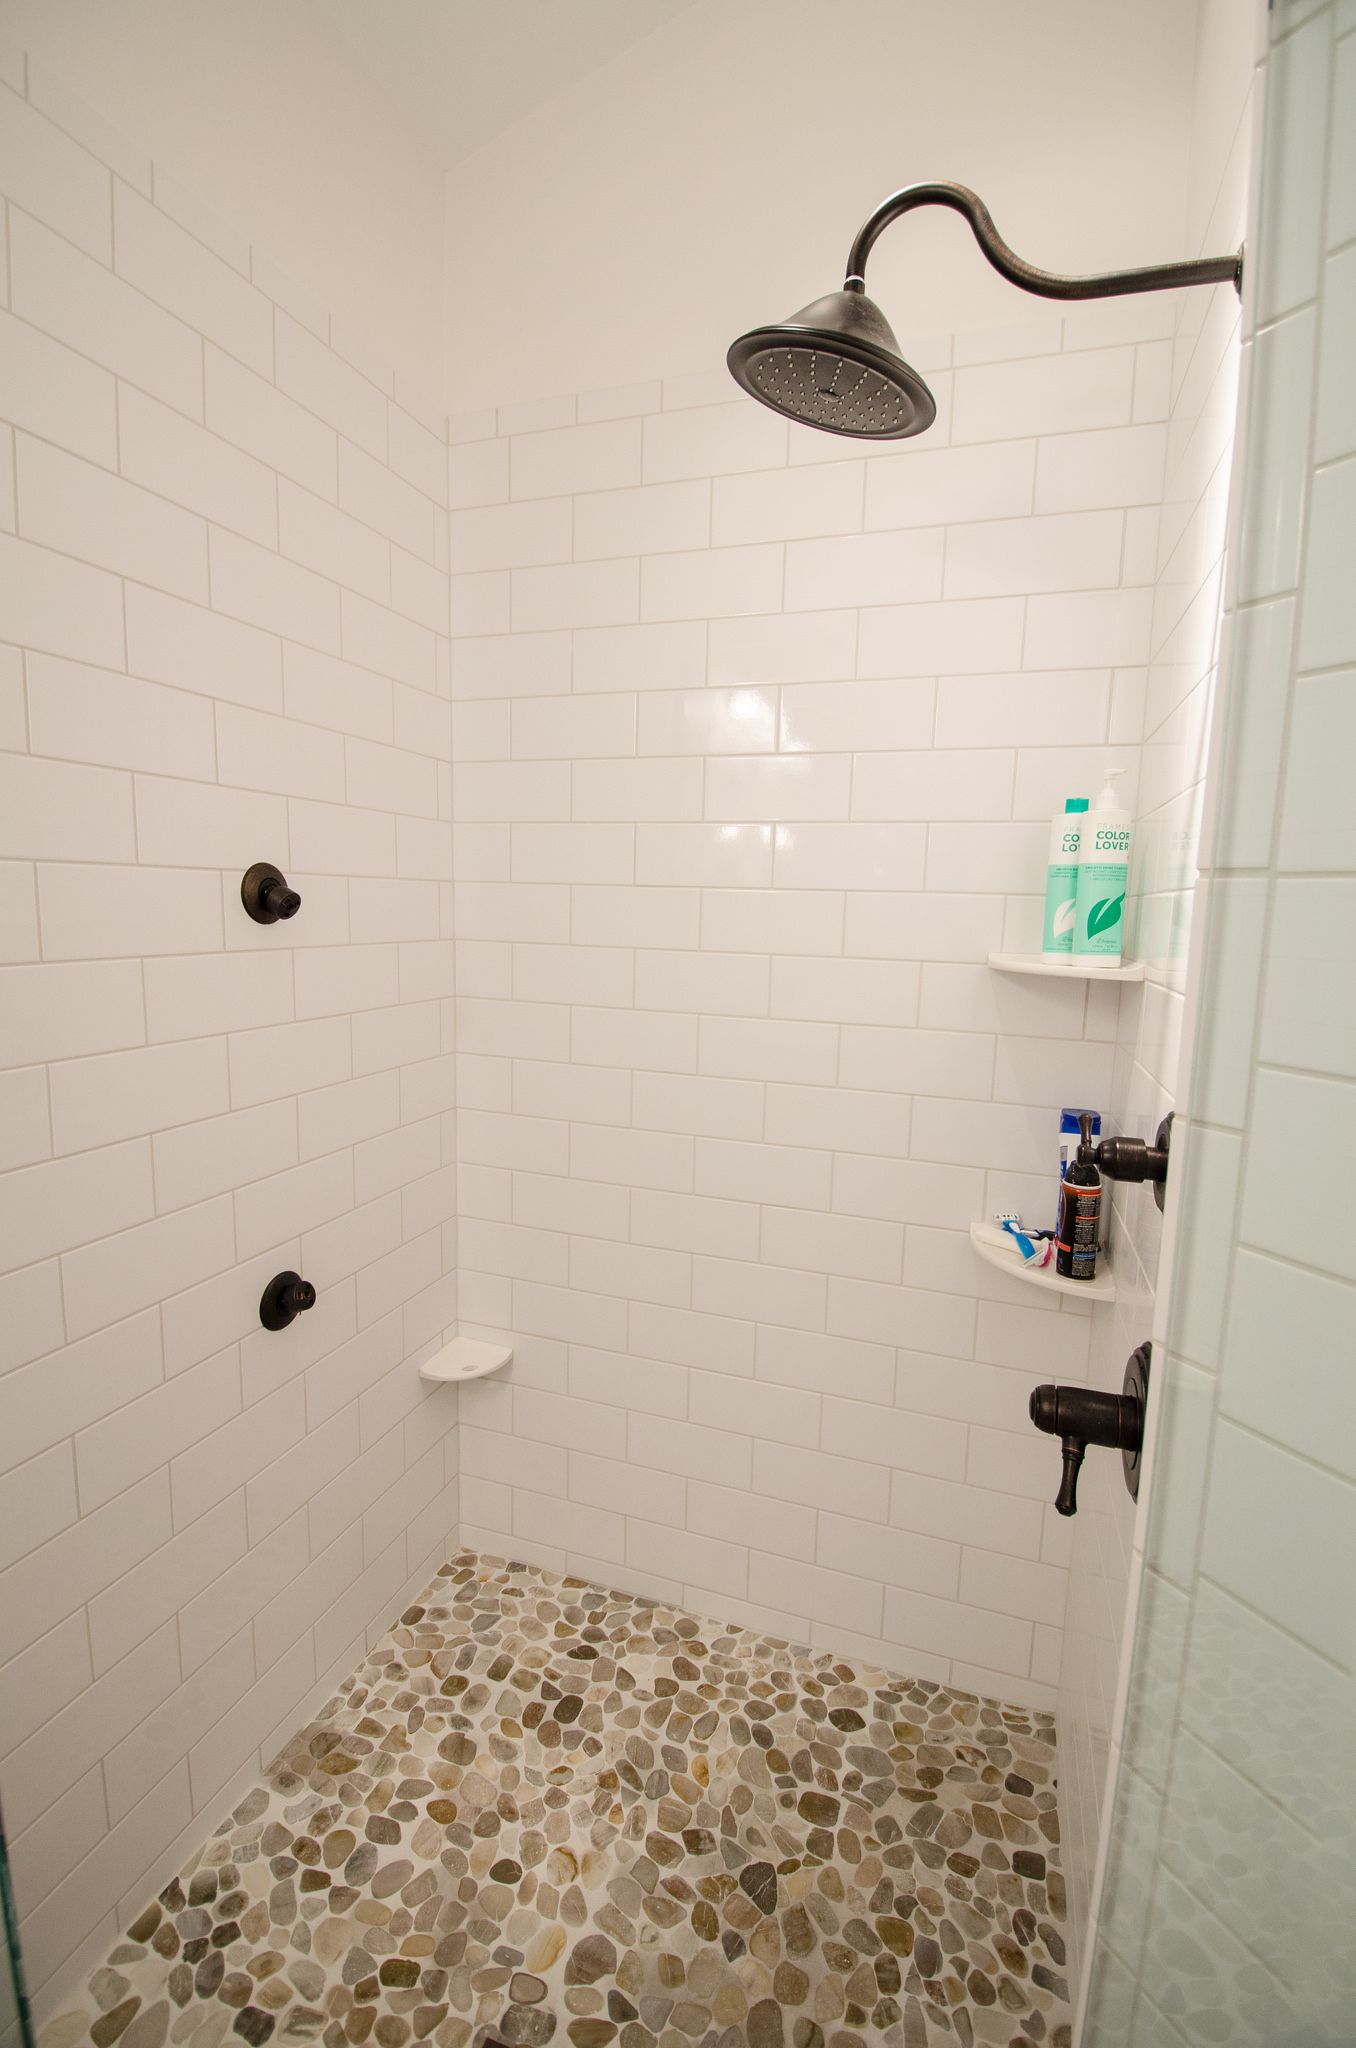 JB470 - AFTER-0105 | Wood tile floors, Double mirror and Bathroom trends